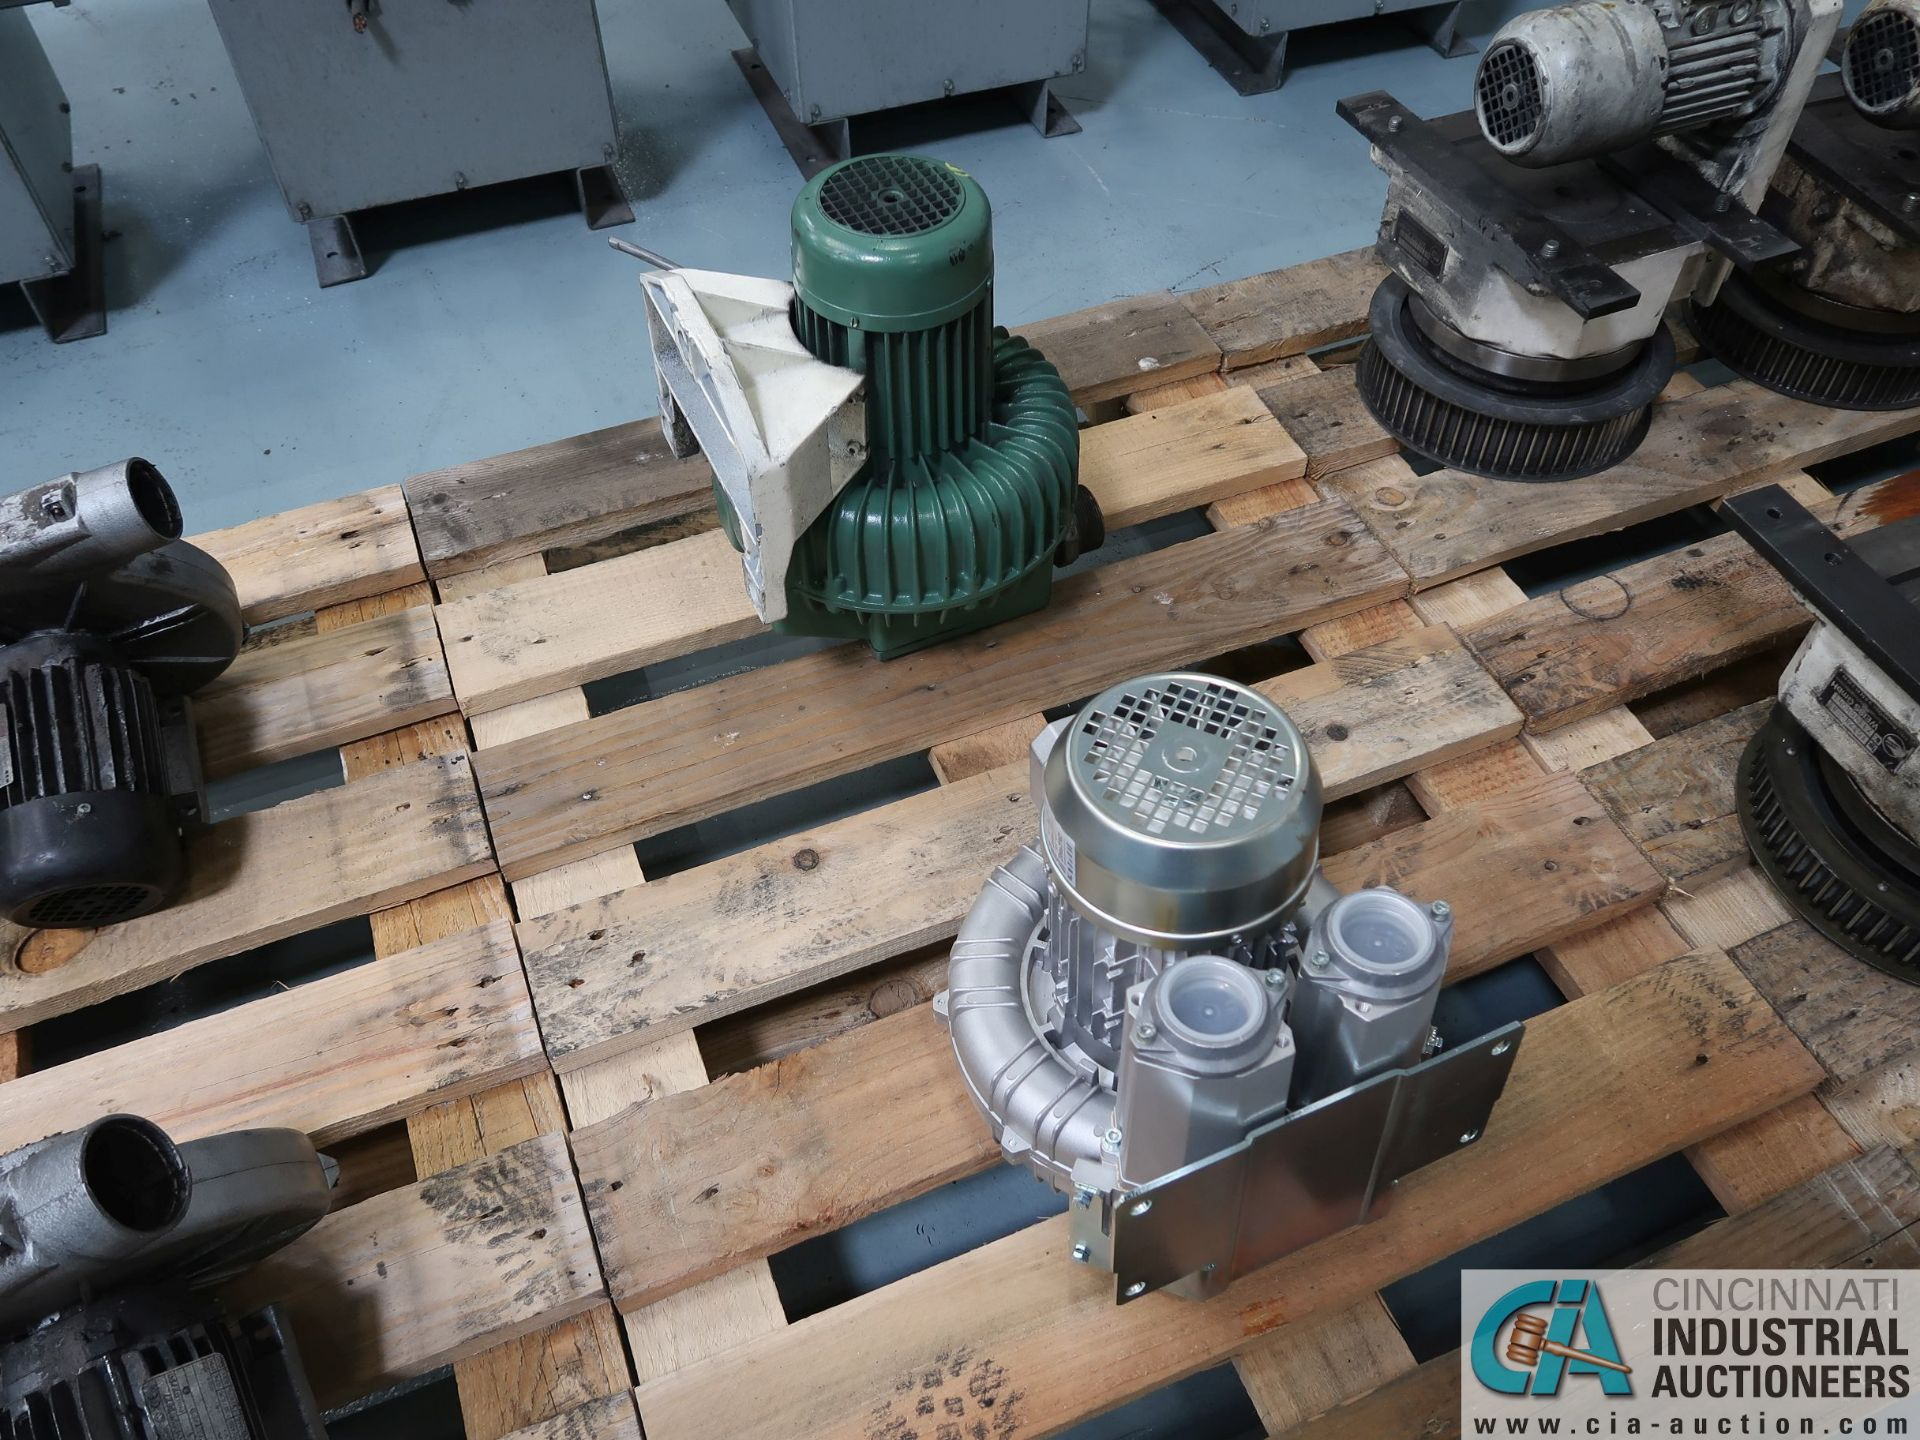 Lot 285 - 0.75 KW BLOWER MOTORS *$25.00 RIGGING FEE DUE TO INDUSTRIAL SERVICES AND SALES*